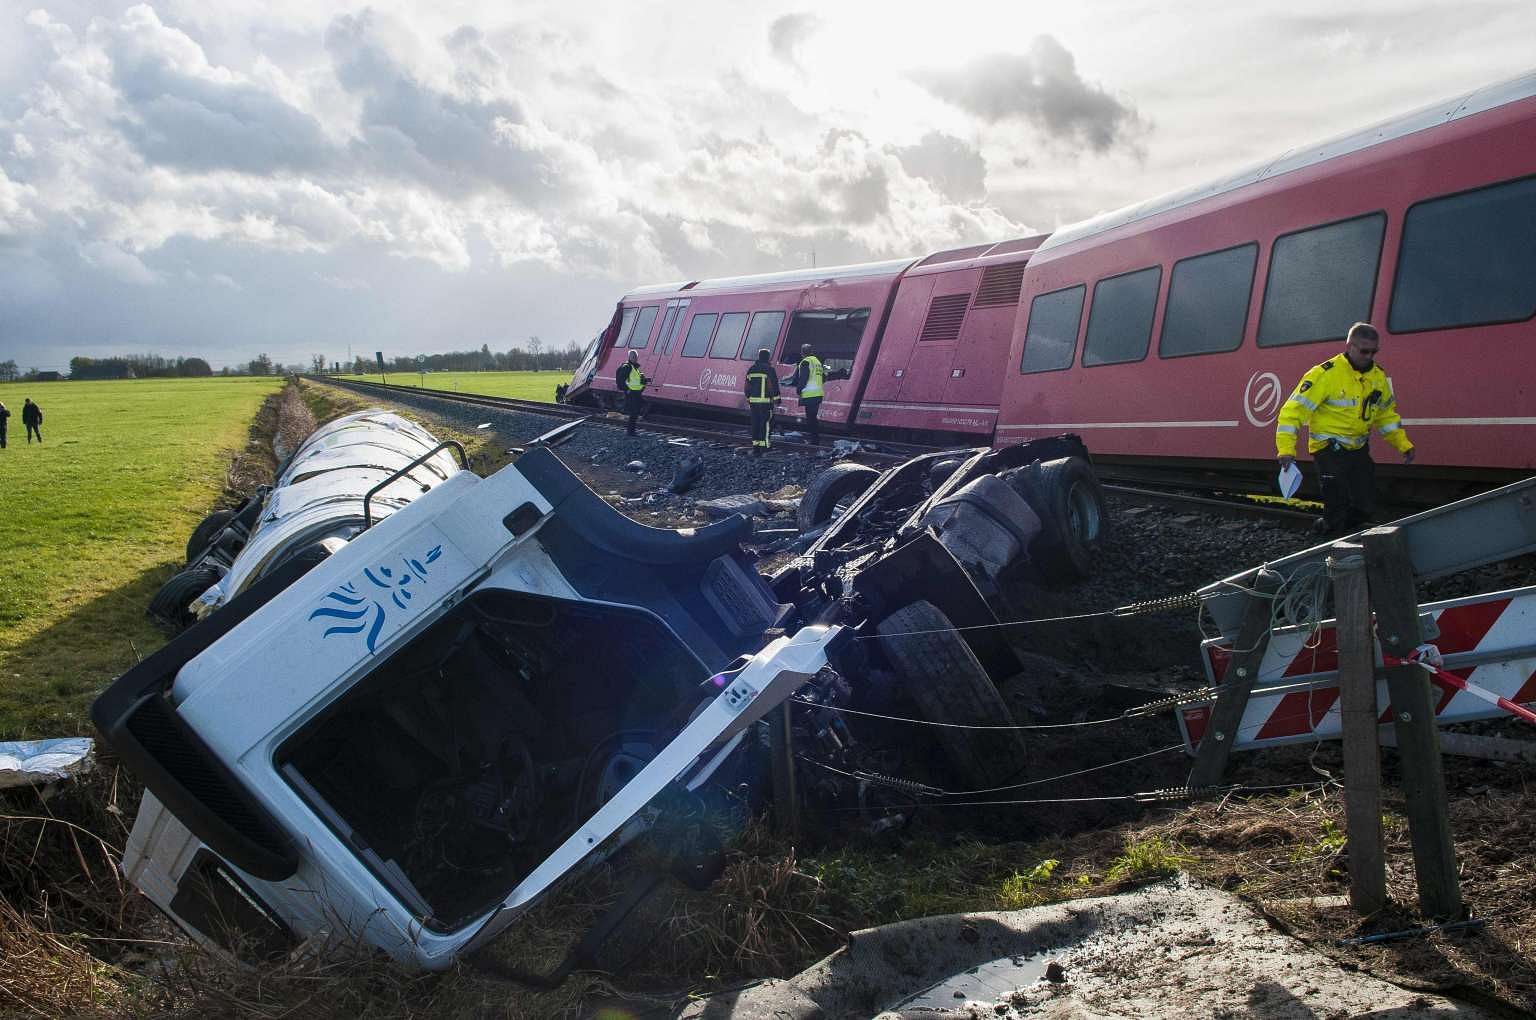 Several seriously hurt in Dutch train crash with milk truck, Europe